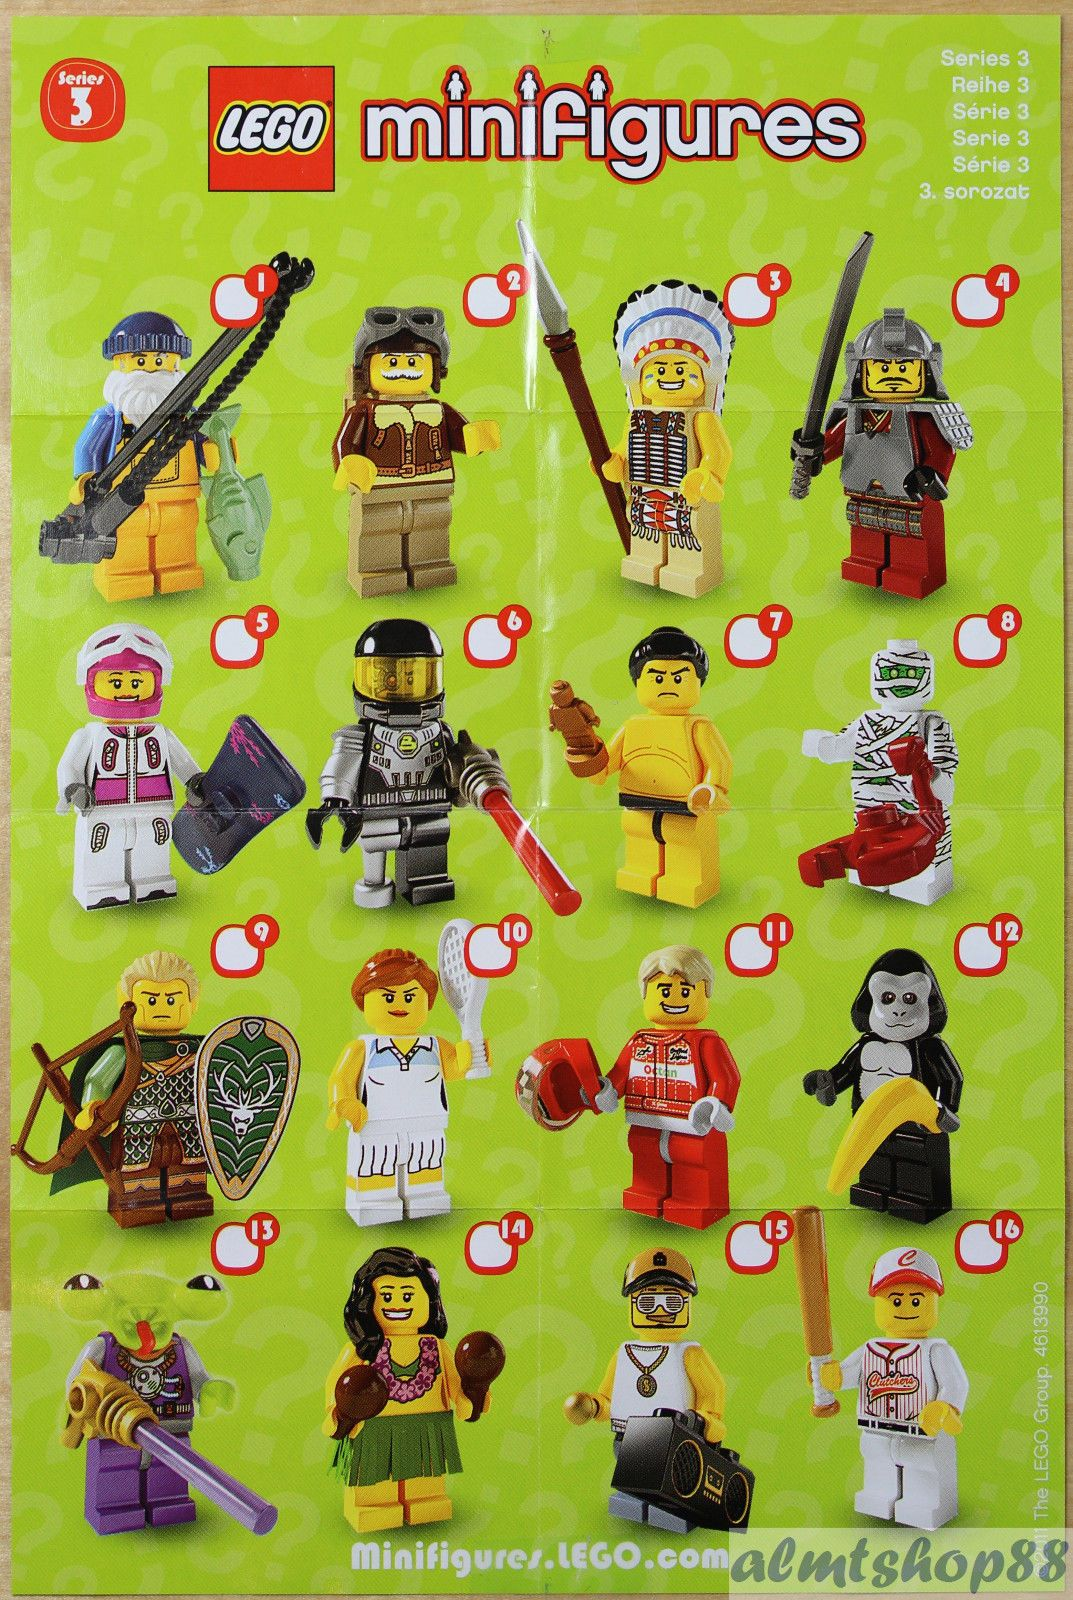 lego mini poster leaflet minifigures series 1 2 3 4 5 6 7 8 9 10 11 12 13 14 15 lego lego. Black Bedroom Furniture Sets. Home Design Ideas